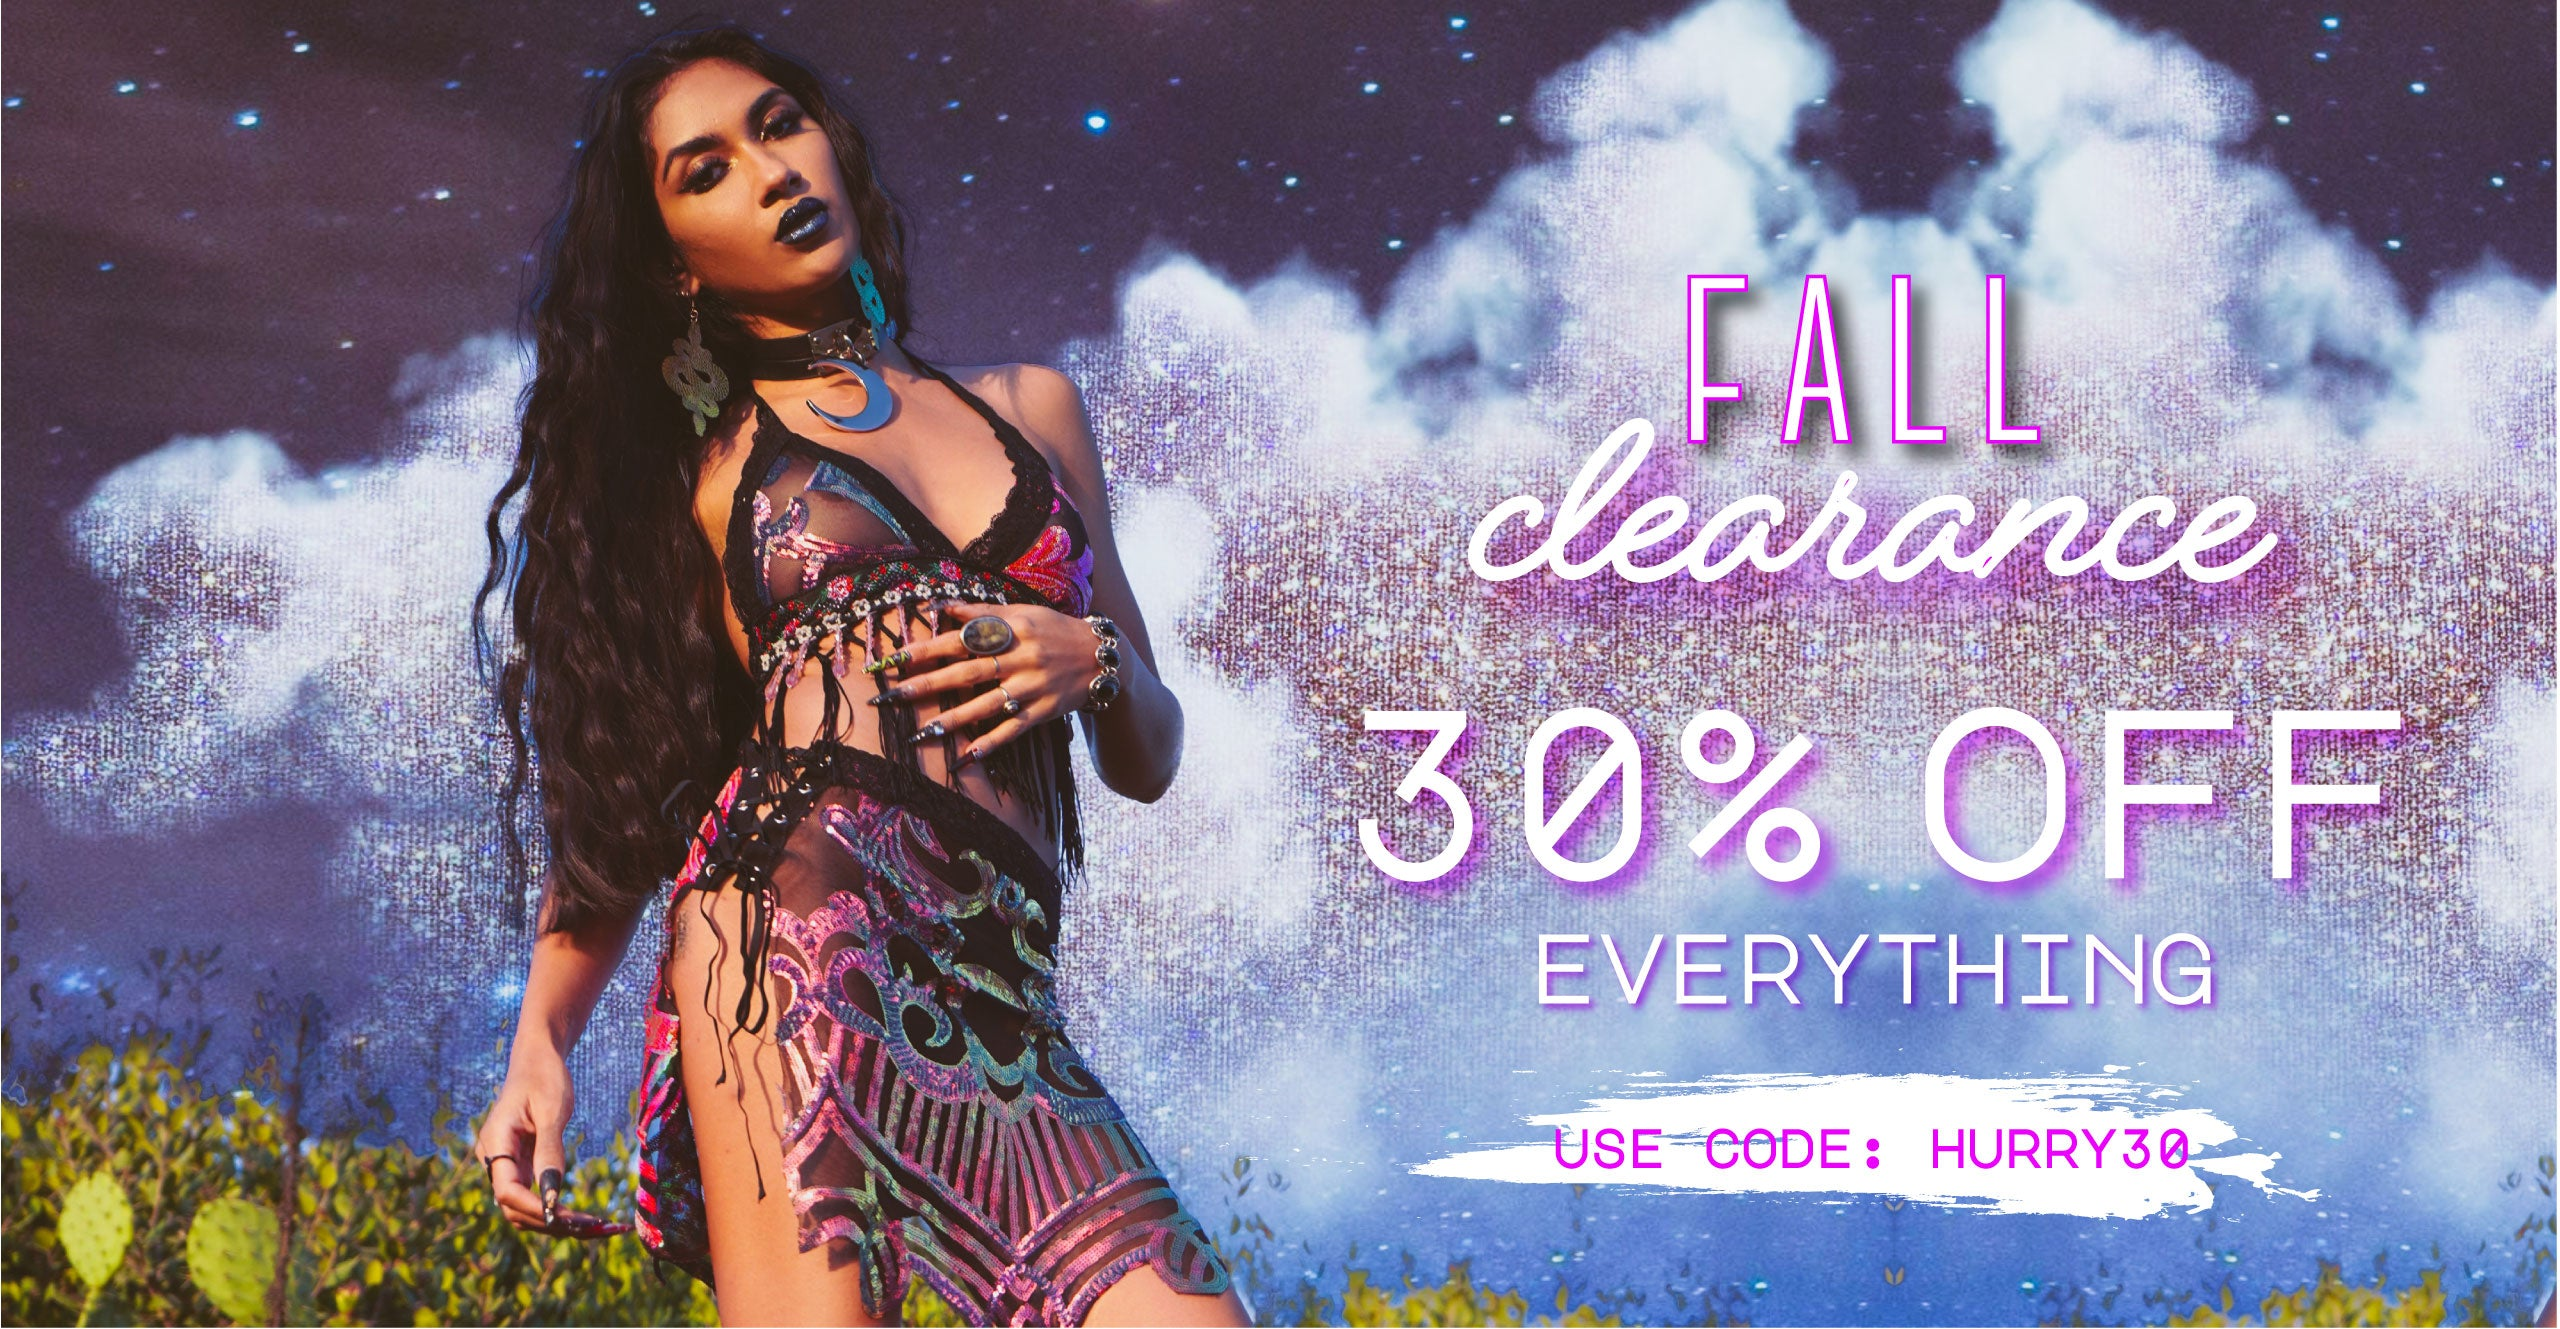 Little Black Diamond Fall Clearance 30% off with HURRY30